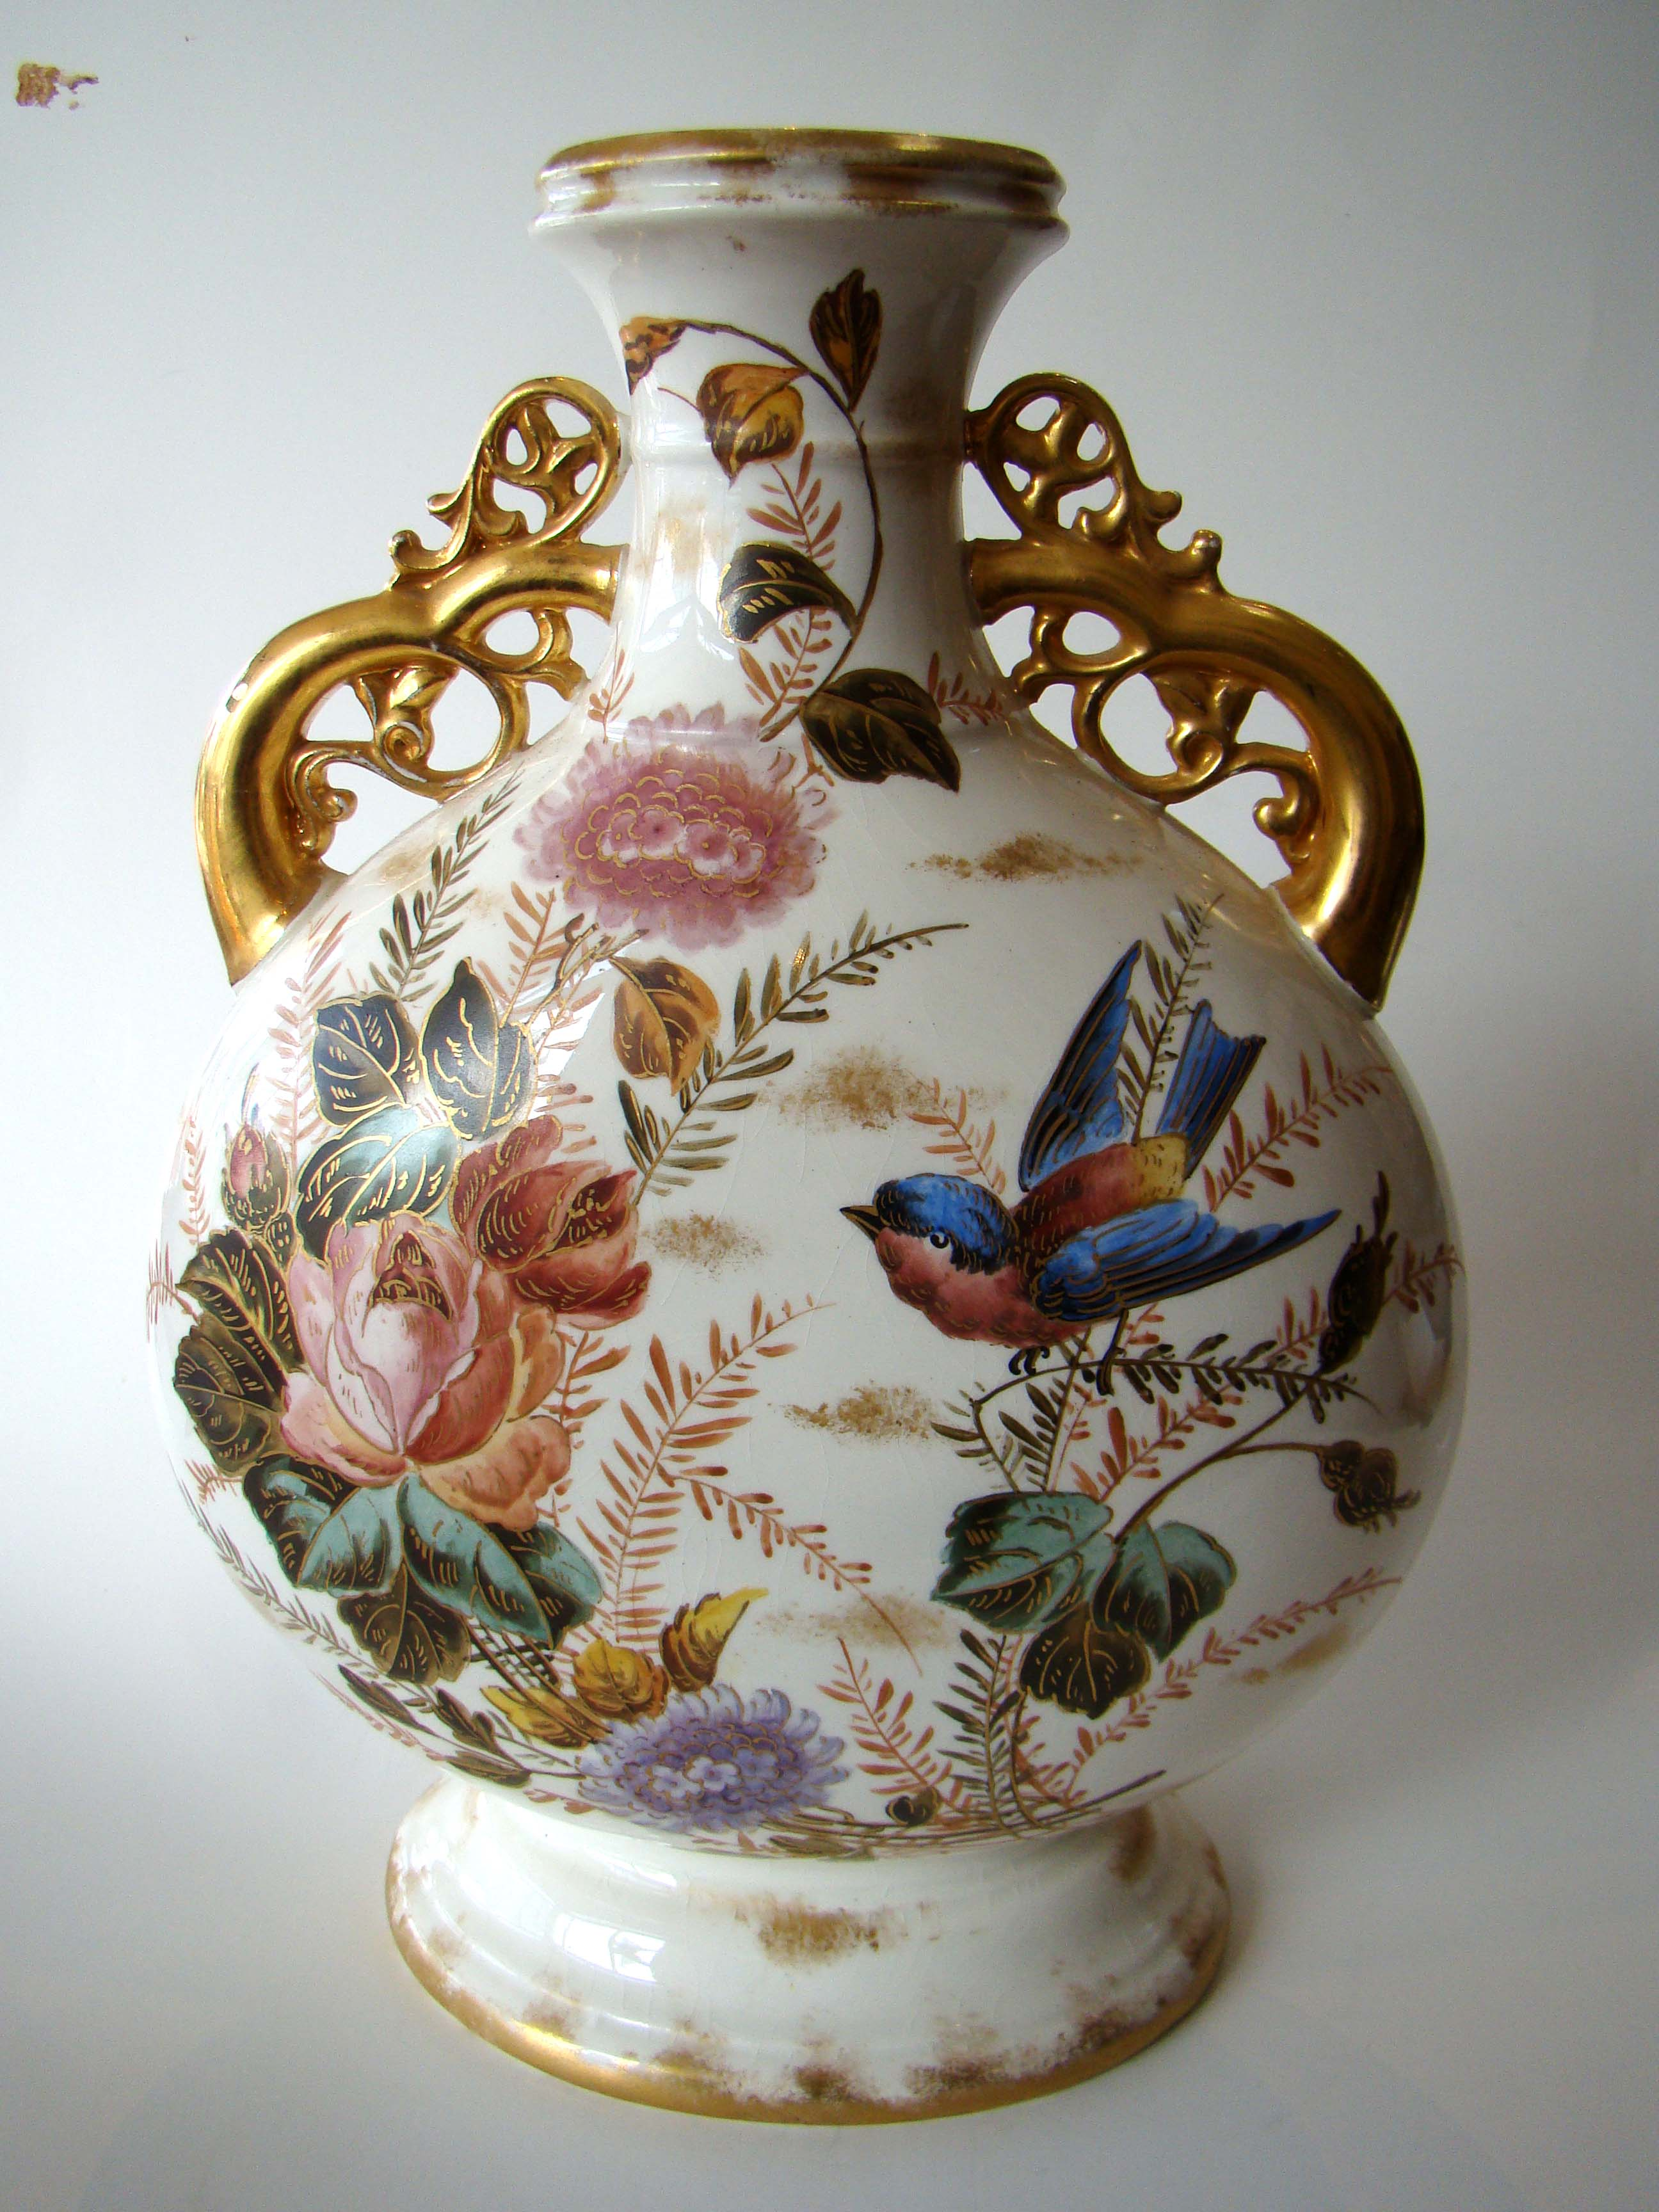 click to view detailed description of A magnificent hand painted vintage two-handled vase circa 1880-1900